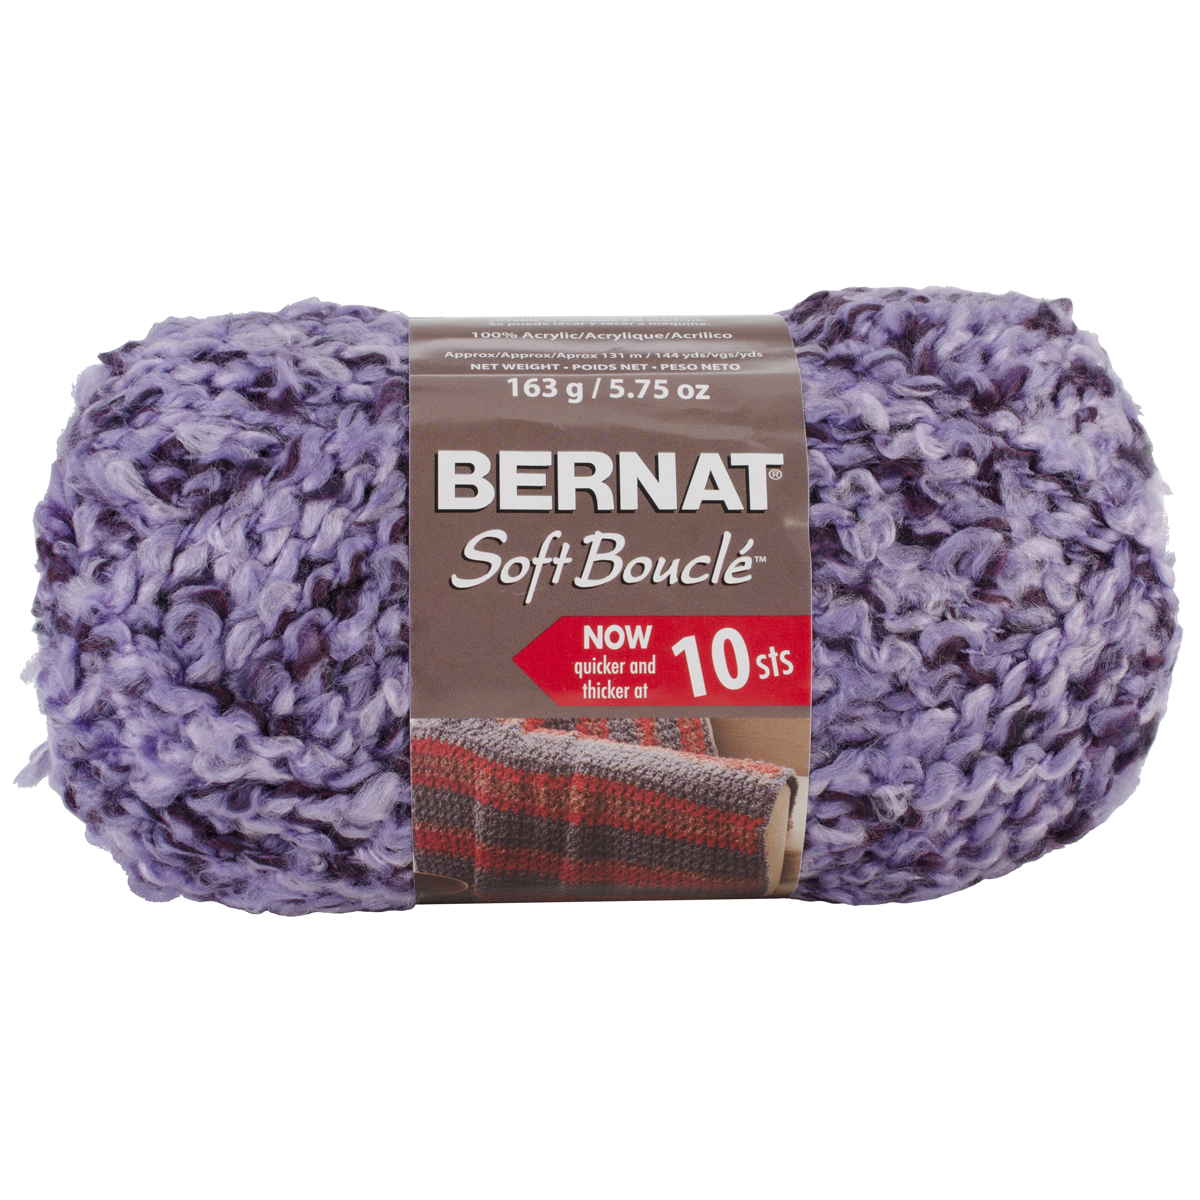 Super Bulky Yarn : ... Soft Boucle Yarn ? Bernat Soft Boucle Yarn Super Bulky Lavender